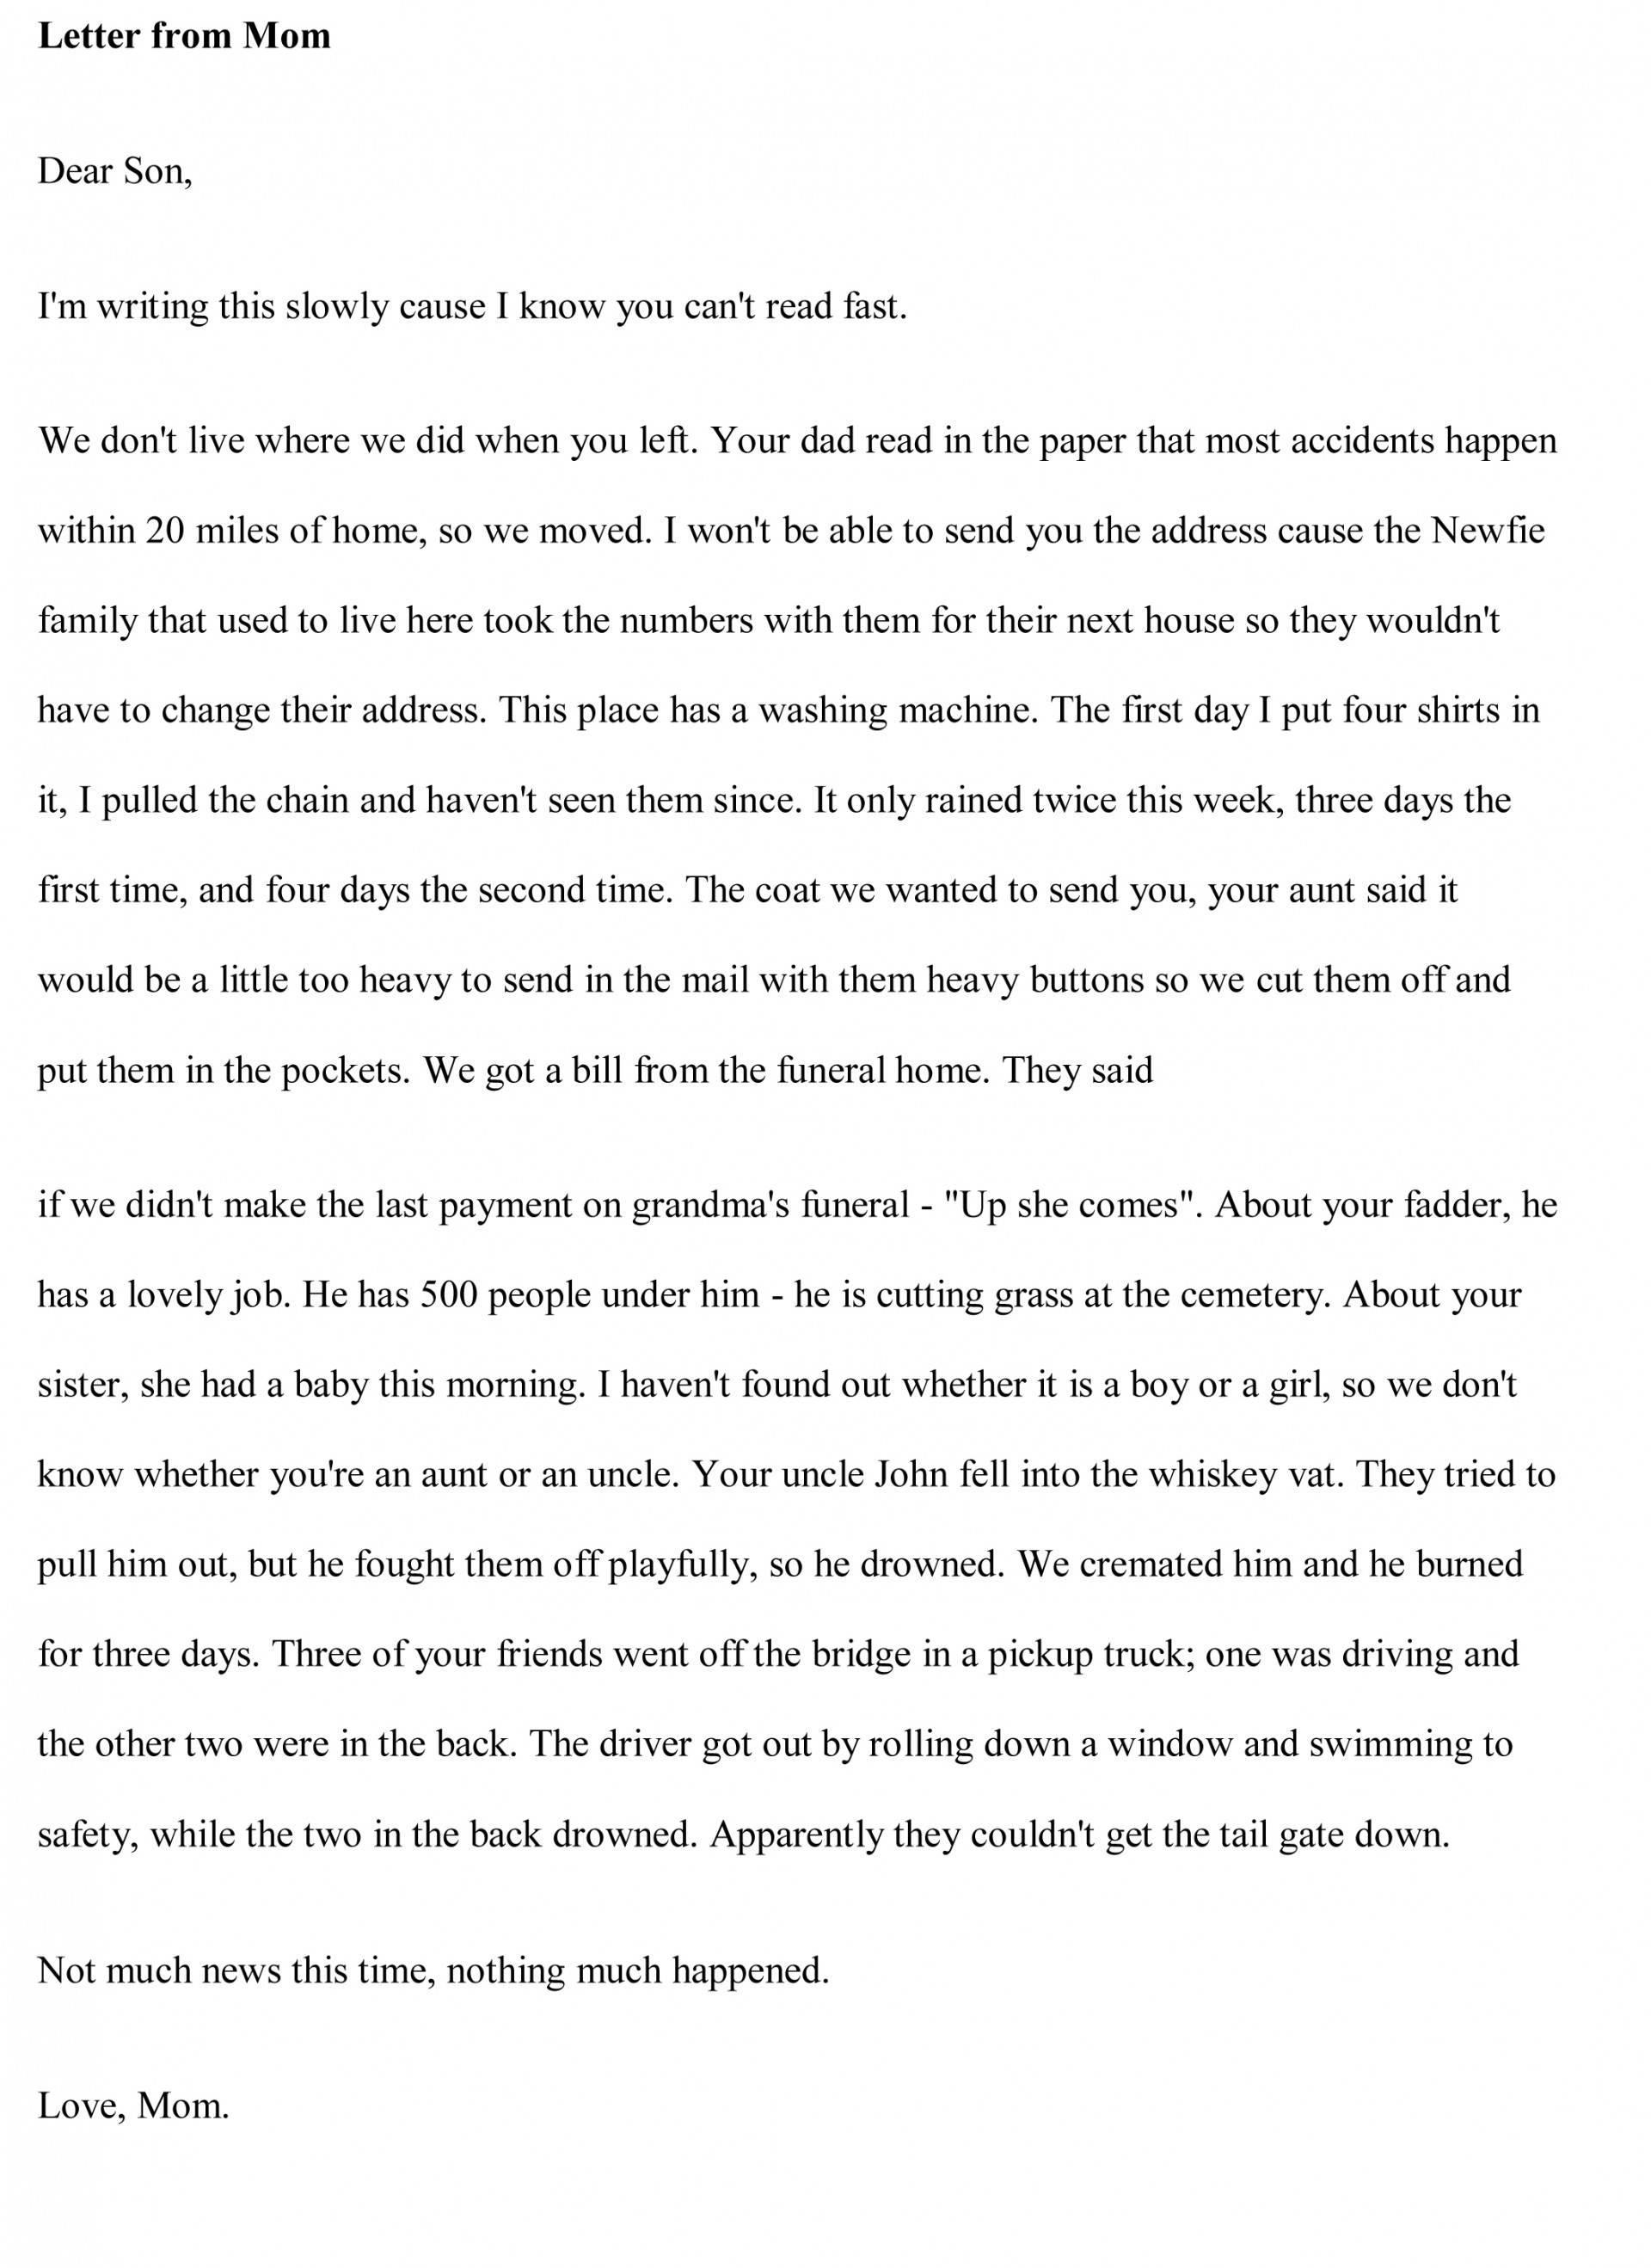 003 Essay Example Funny Essays Free Stupendous Topics Written By Students For College 1920